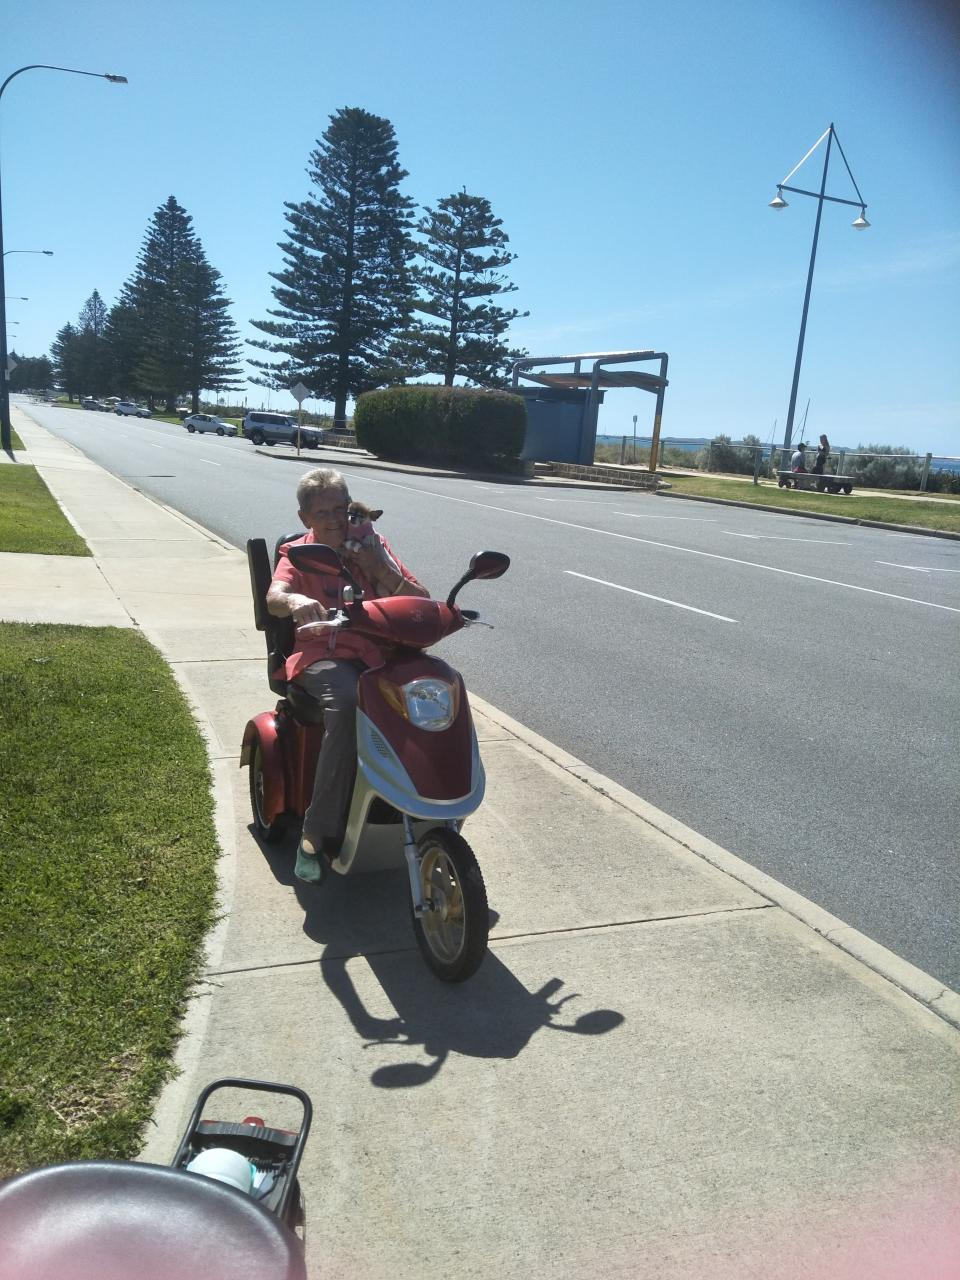 Elderly woman using mobility scooter on footpath as road rules revealed.